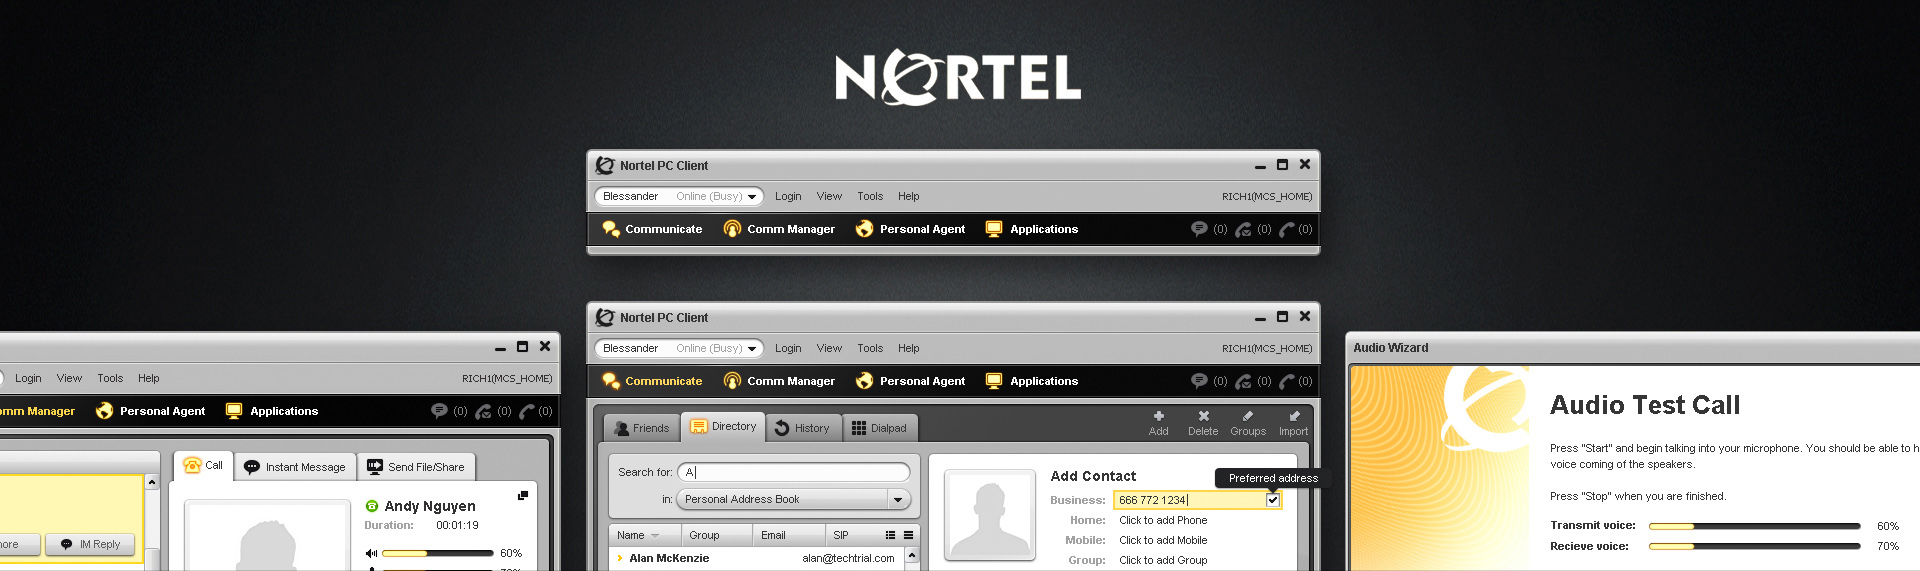 Nortel PC Communications Client  Desktop Application UX & UI Design  Nortel contracted The Skins Factory to redesign their feature-rich communications application - the Nortel PC Client. The PC Client is an application that provides advanced IP telephony features which were not featured on traditional phones. By completion, The Skins Factory created over 45+ separate screens and UI assets with a strong focus on ease-of-use and an attractive visual design aesthetic.